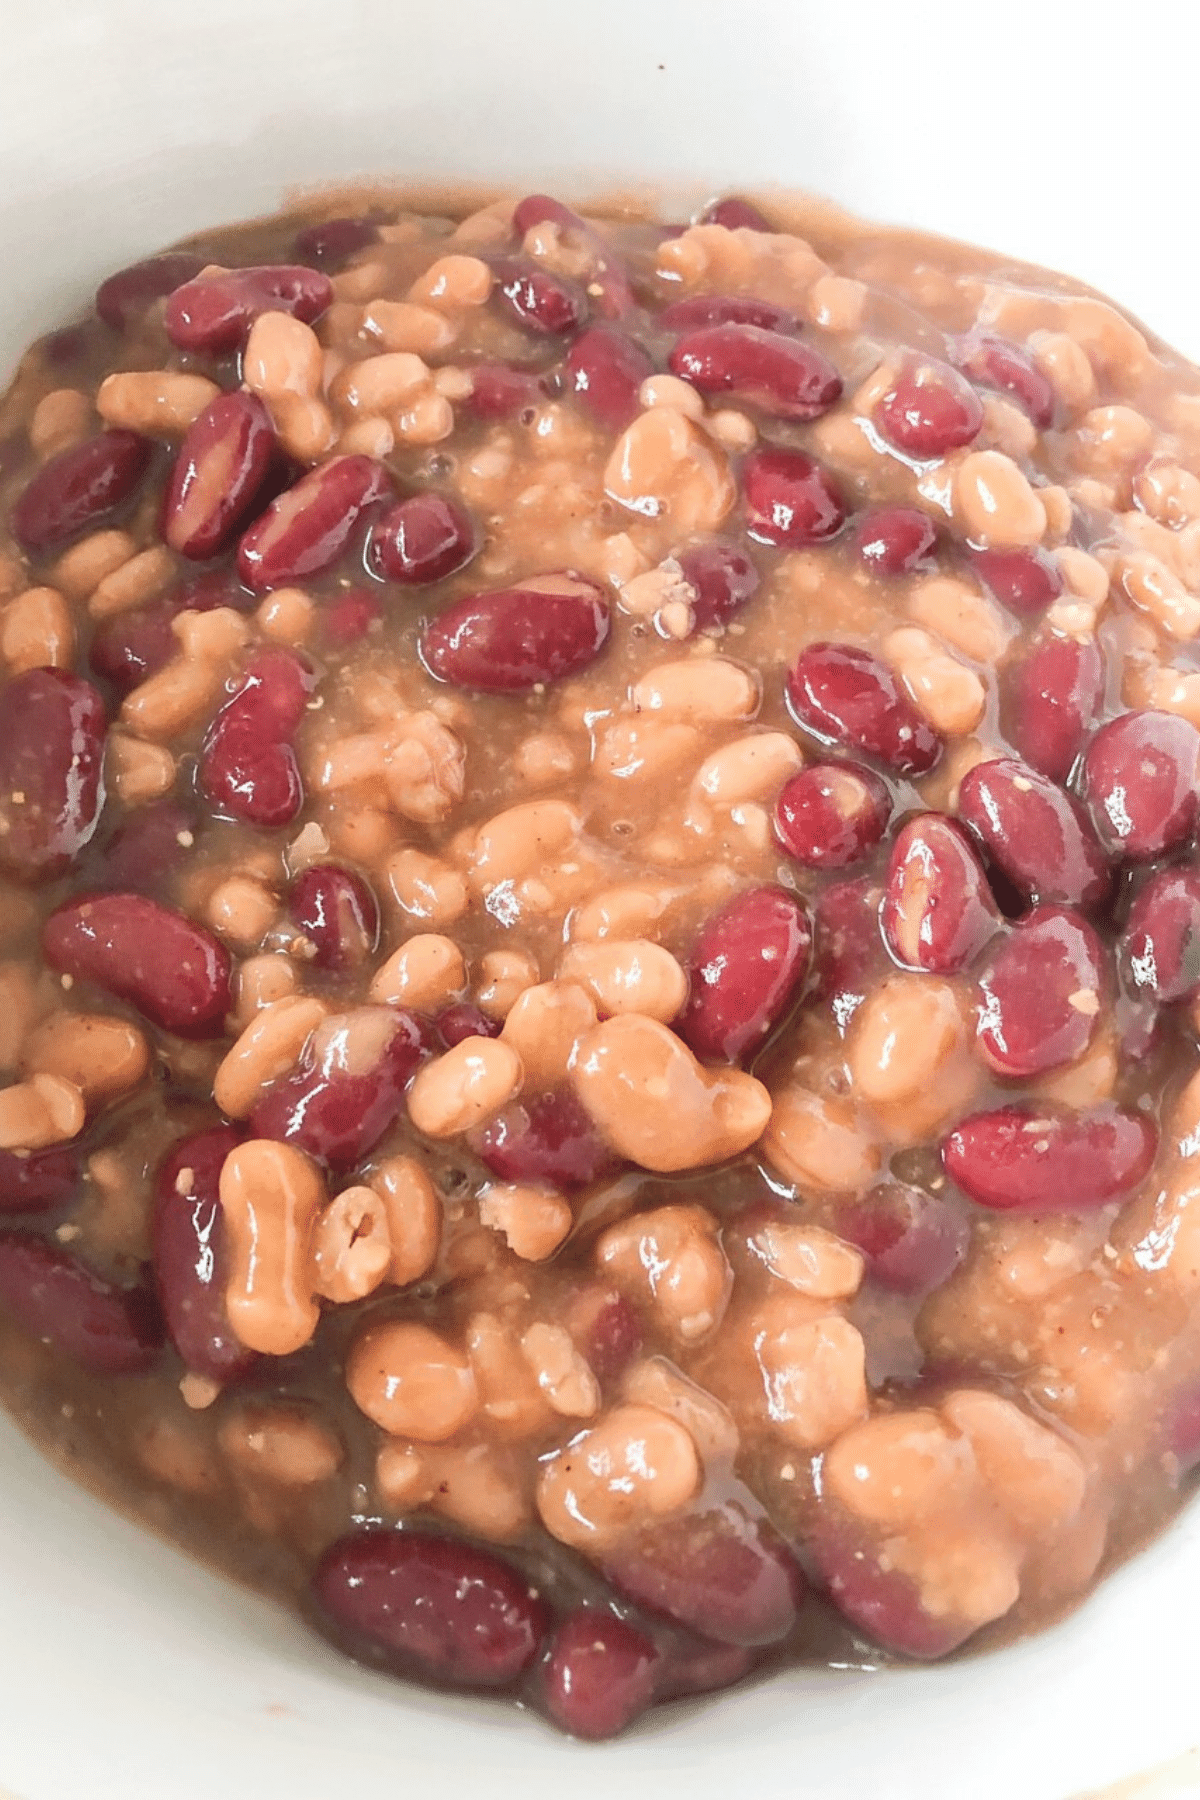 Mix all ingredients for baked beans together well